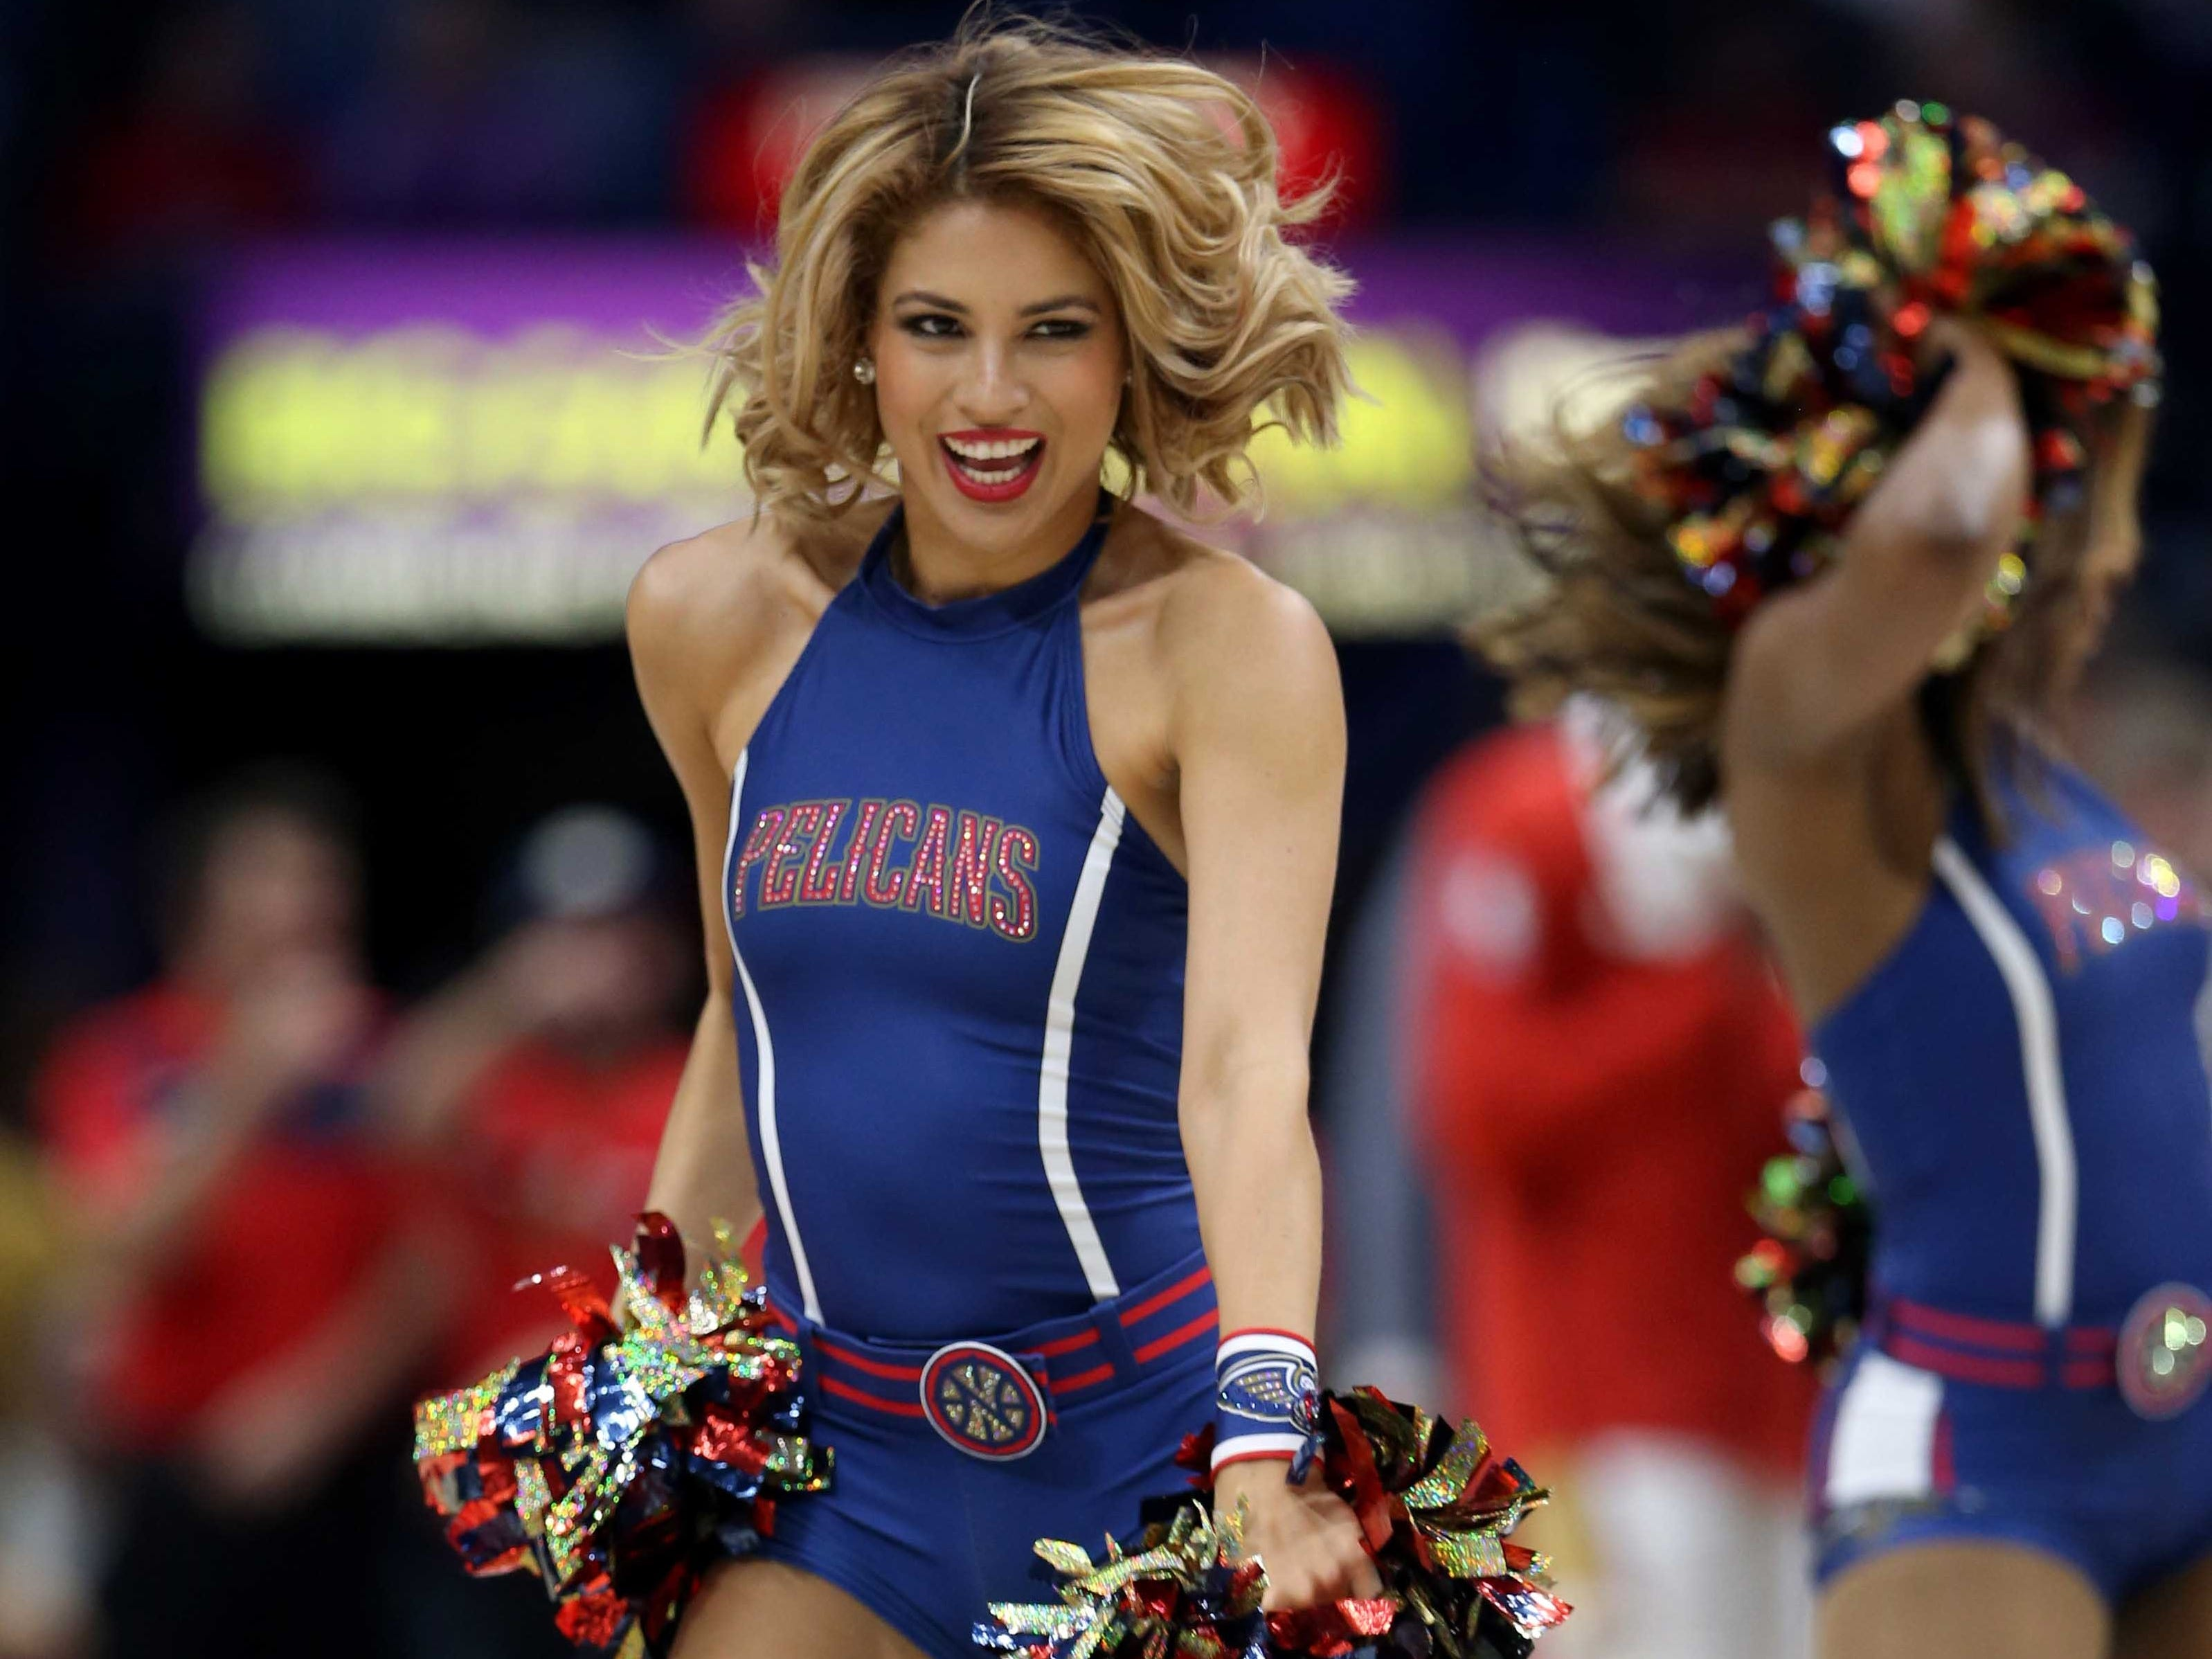 Nov. 10: The Pelicans dance team performs during a second-half stop in play against the Suns.